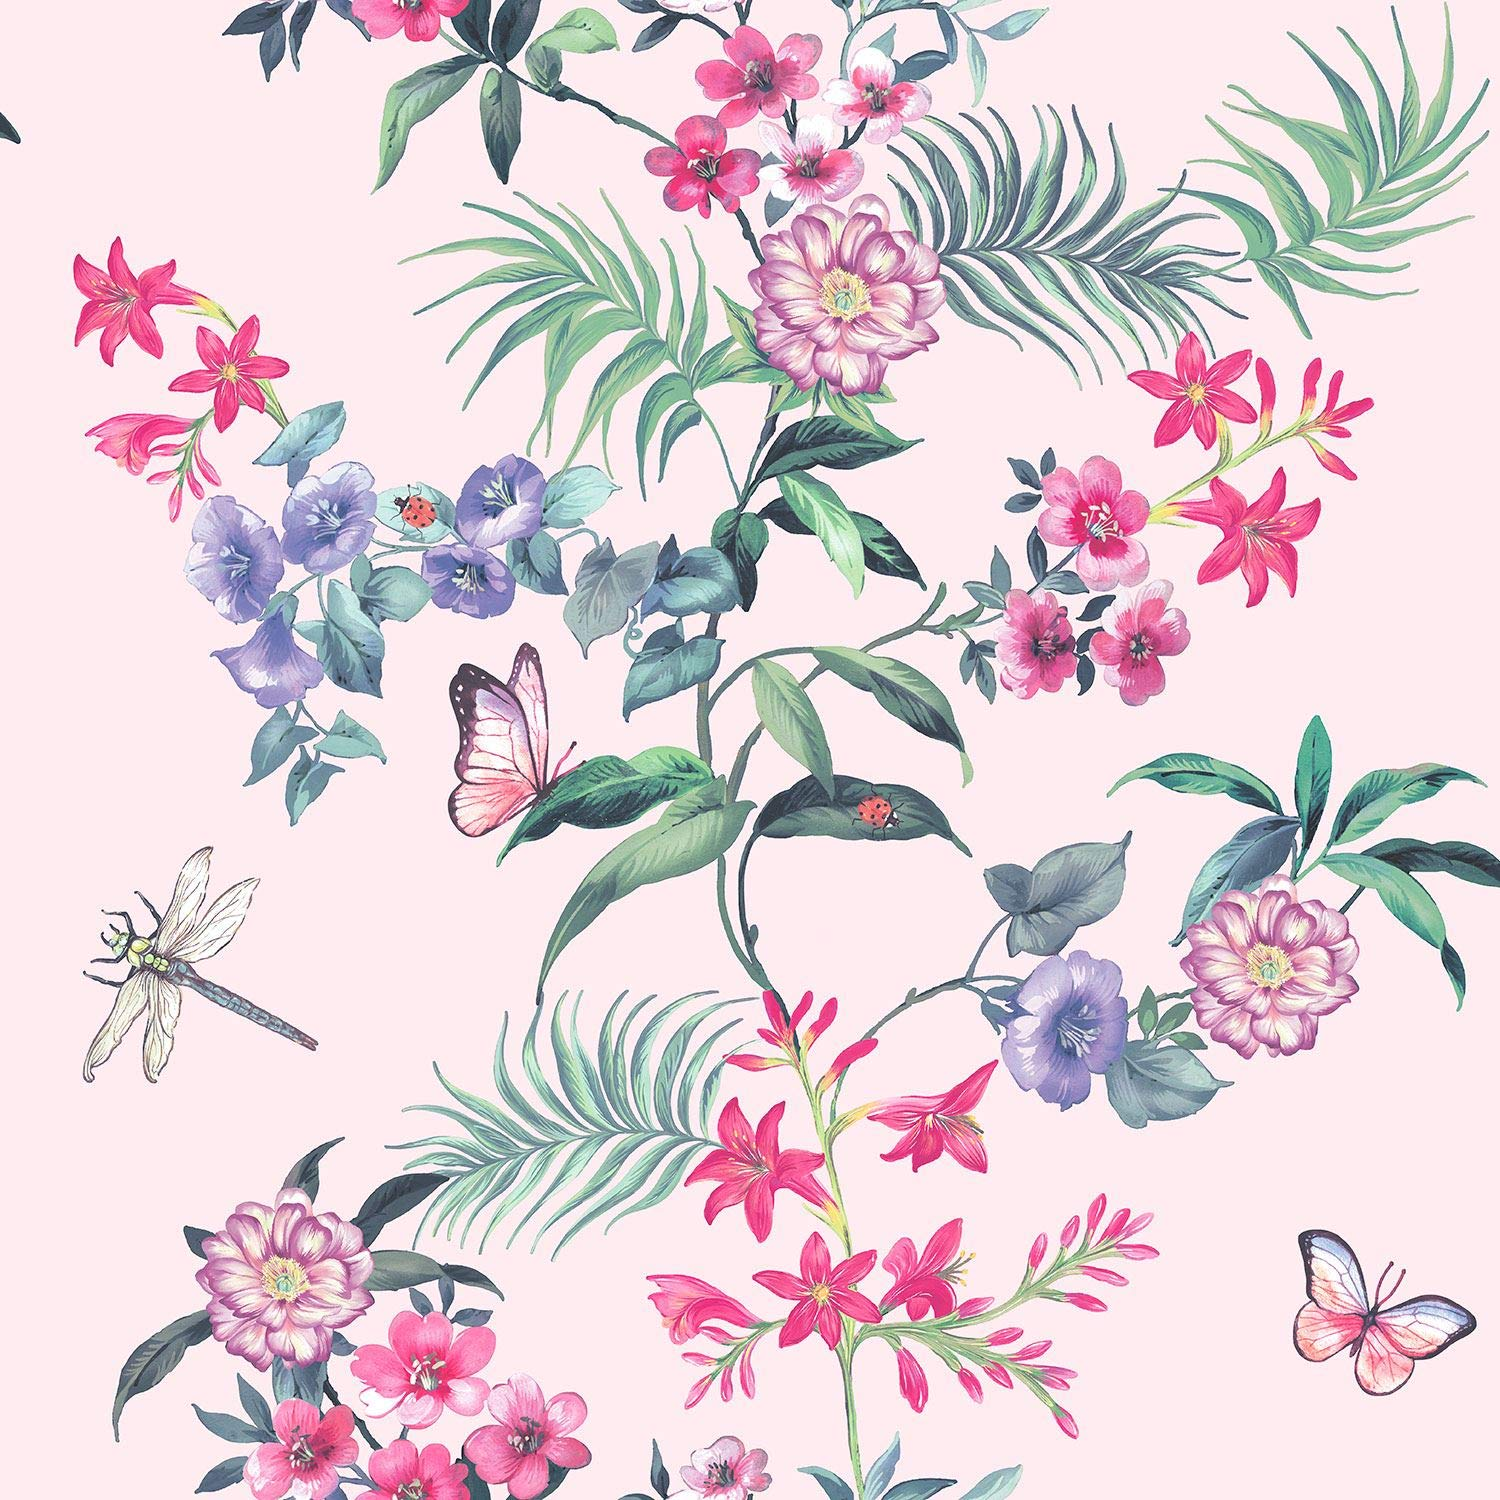 Tropical Floral Pink Wallpaper Flowers Butterfly Dragonfly